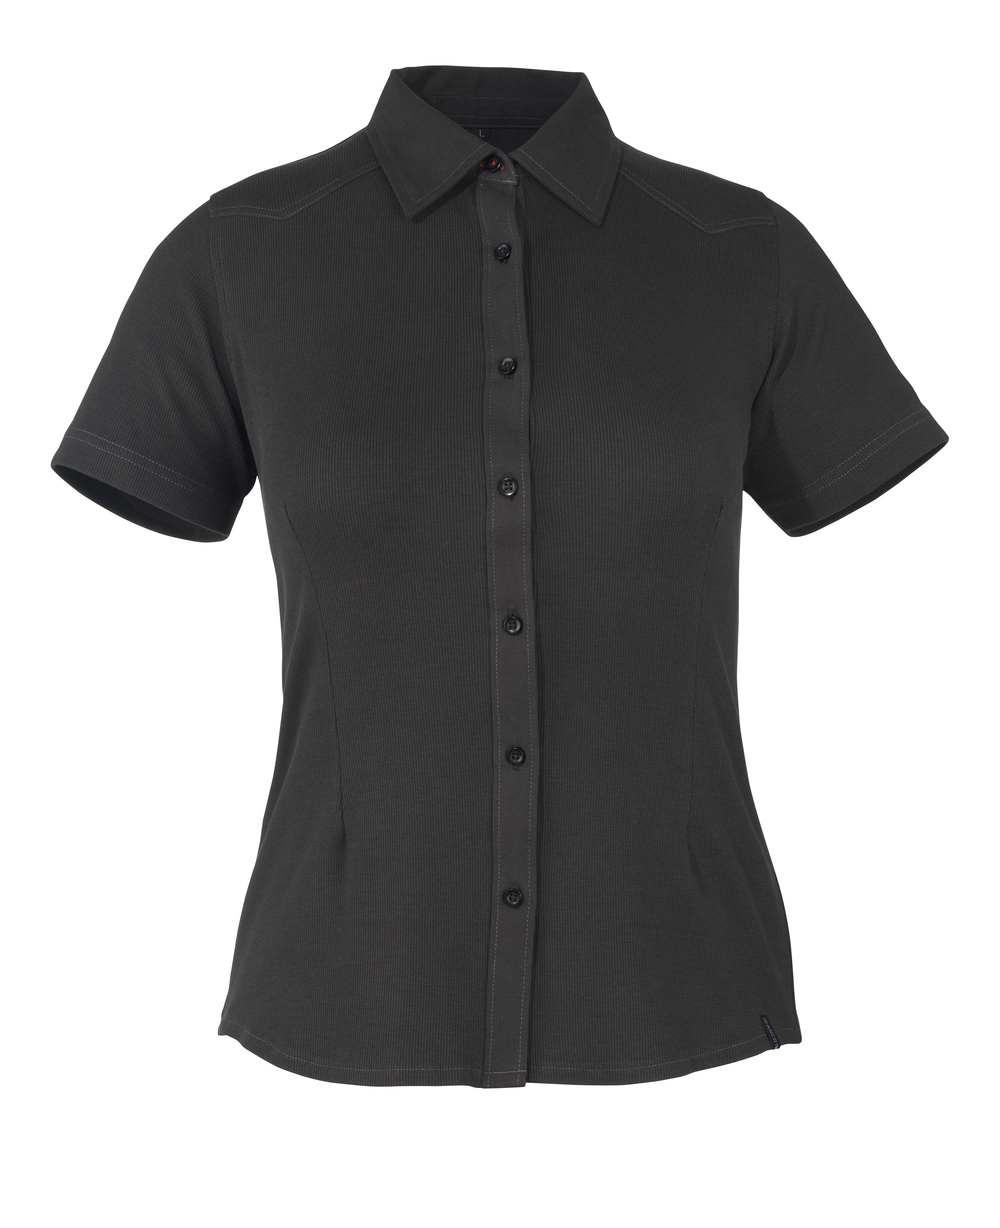 50374-863-09 Shirt, short-sleeved - black